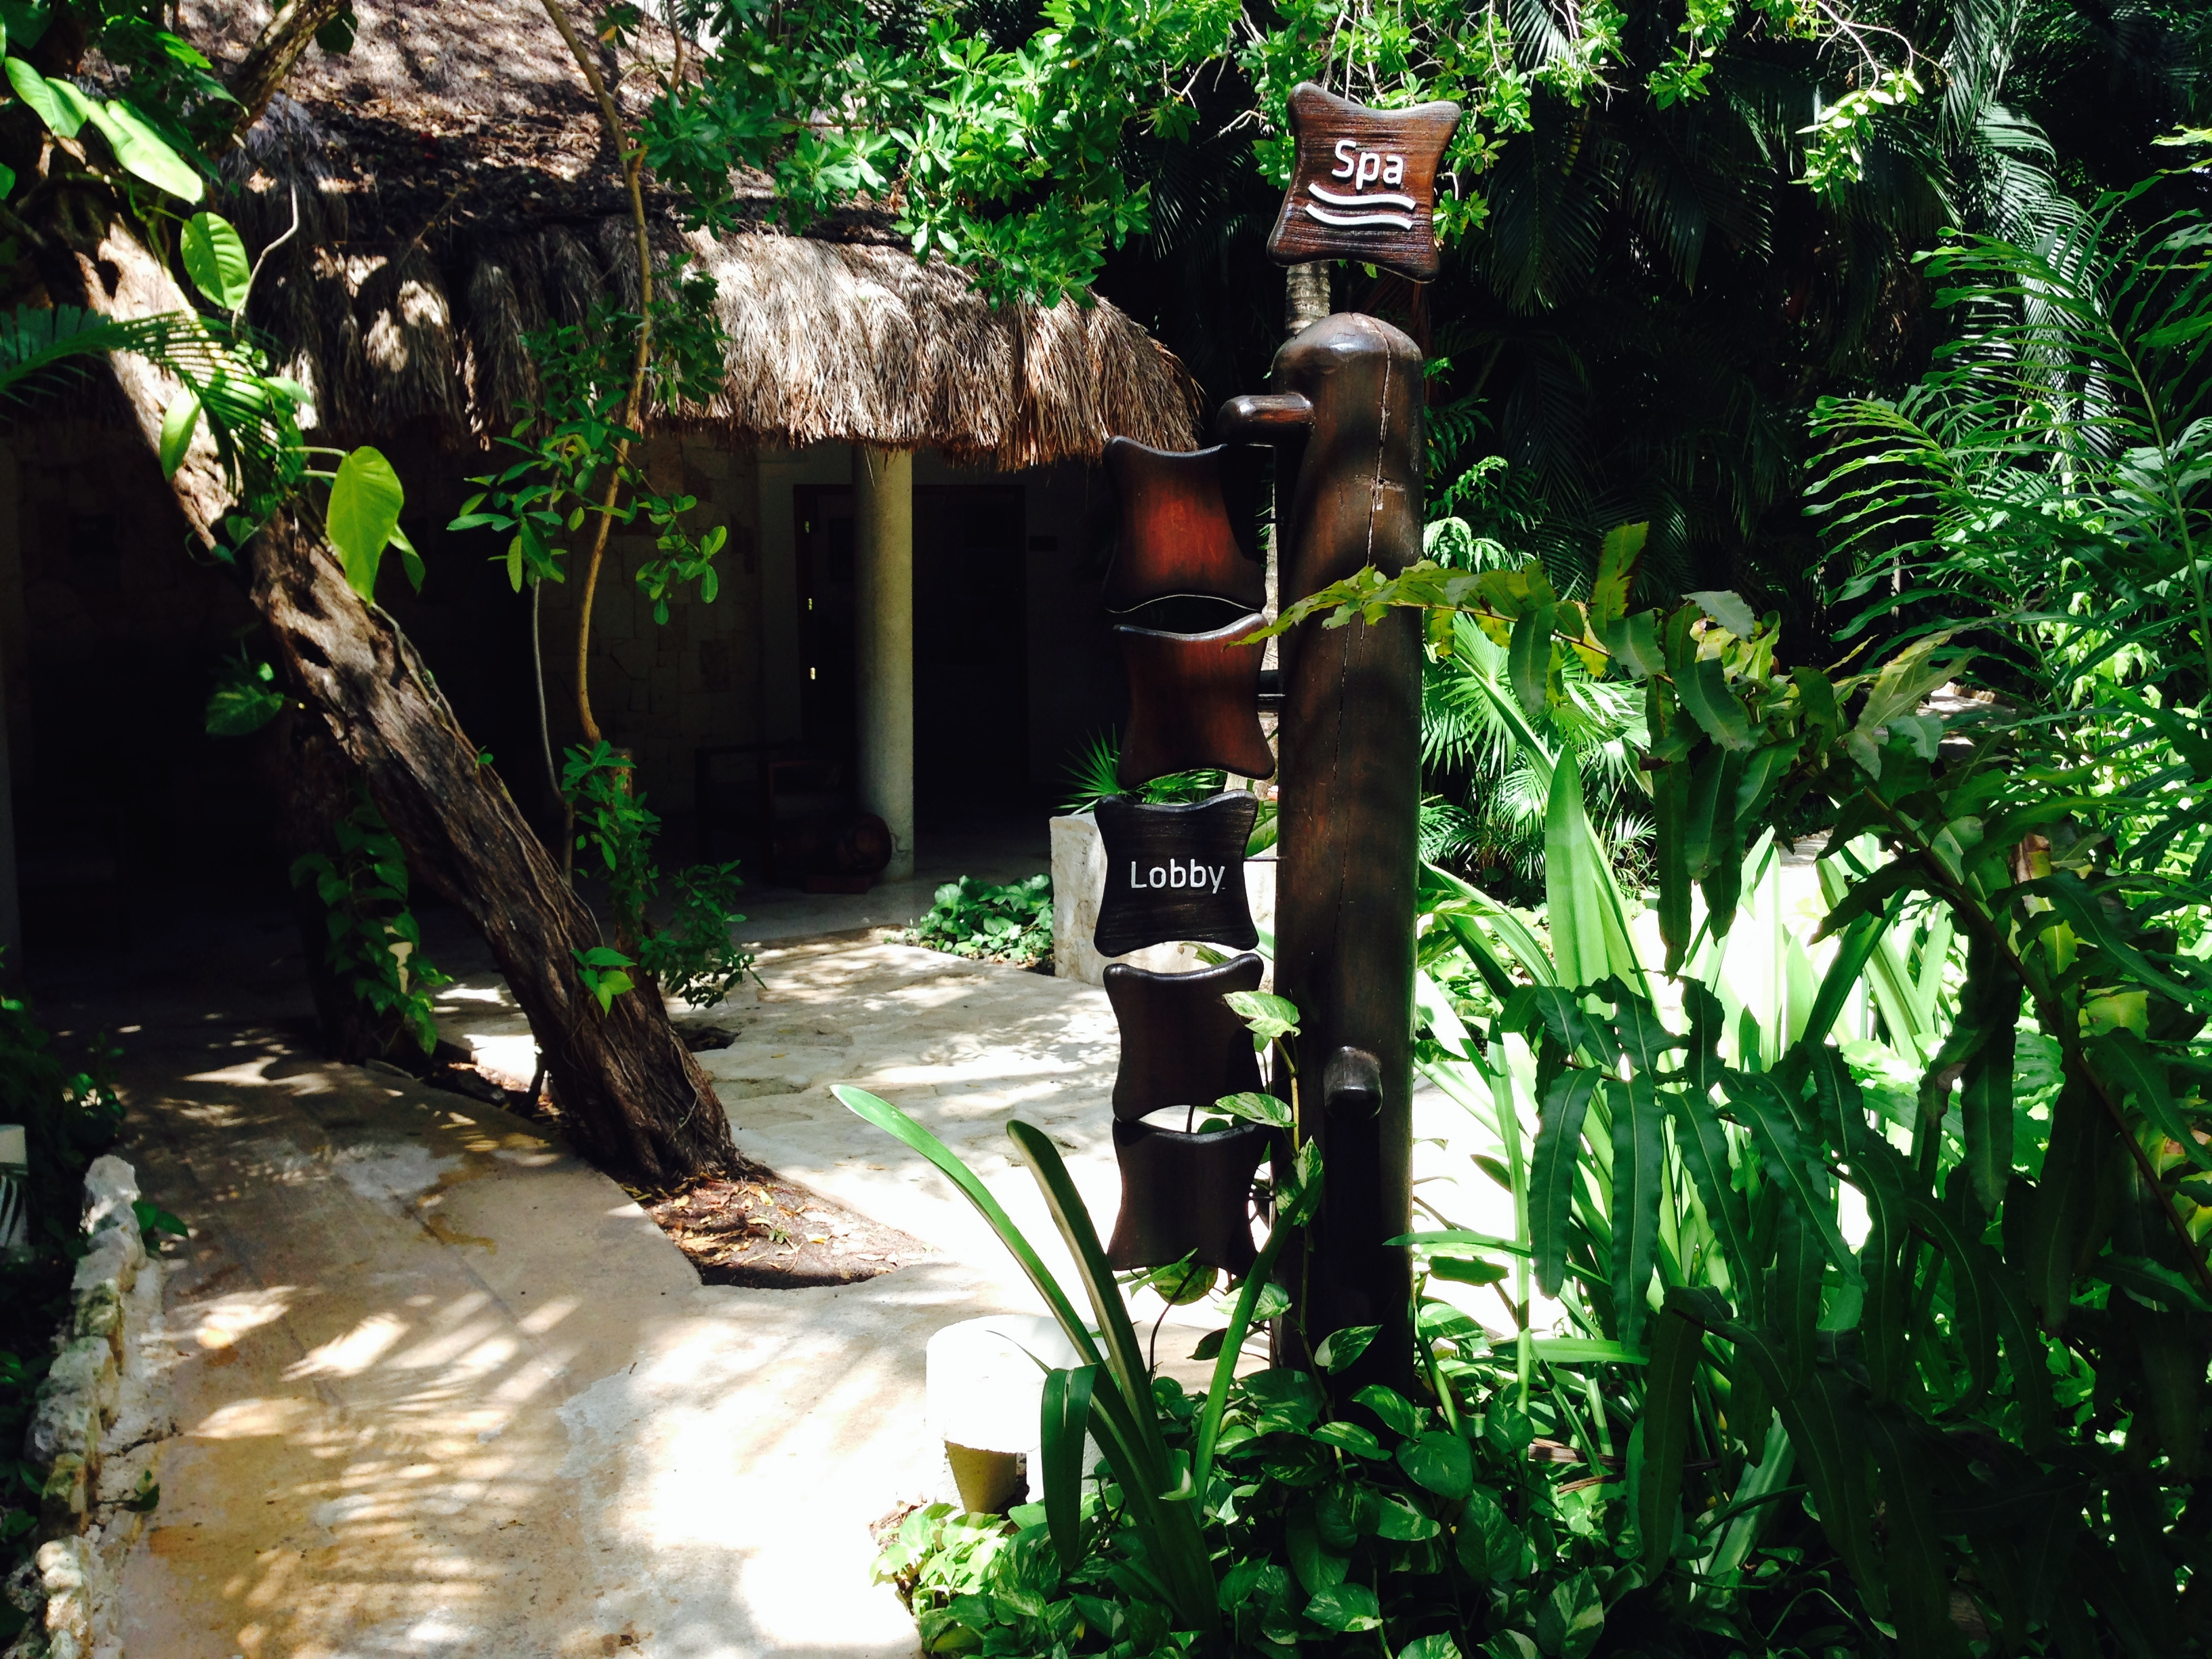 There is no traditional lobby at Viceroy and the signage along the jungle-like pathways lets you know if you are heading to the beach or the spa.